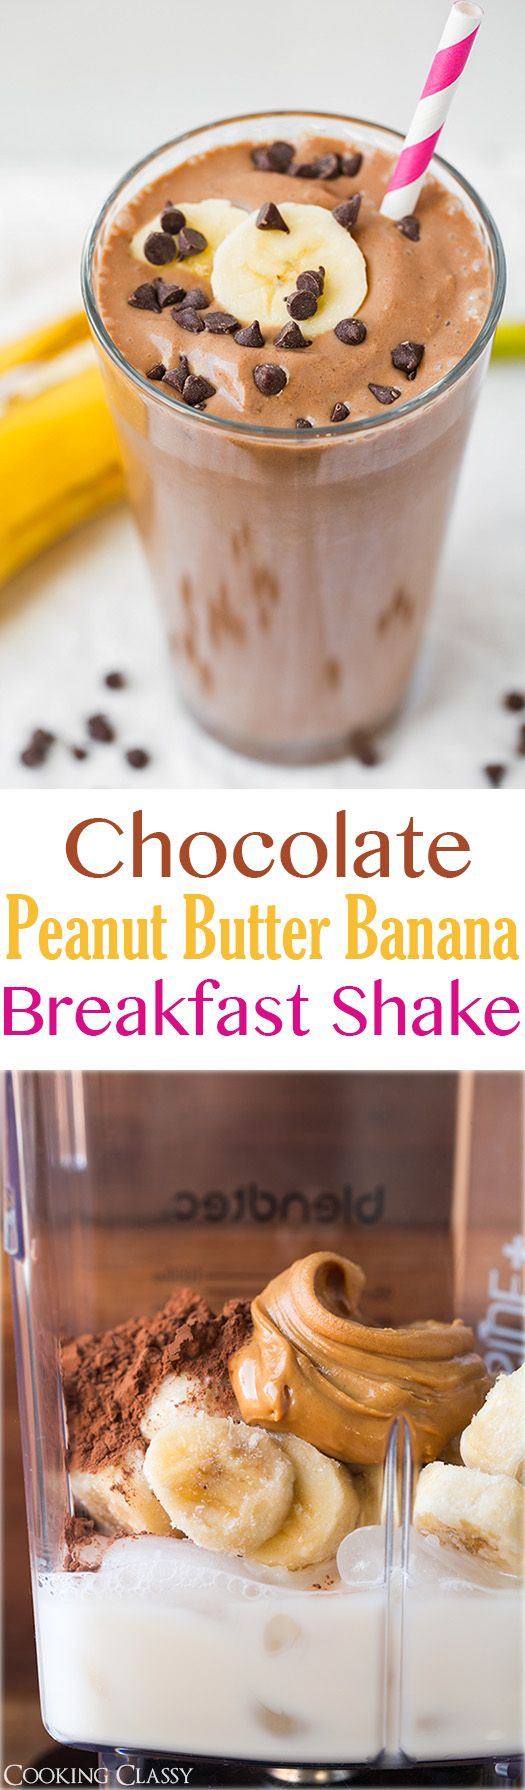 Chocolate Peanut Butter Banana Breakfast Shake - healthy, easy to make and tastes like a shake! http://papasteves.com